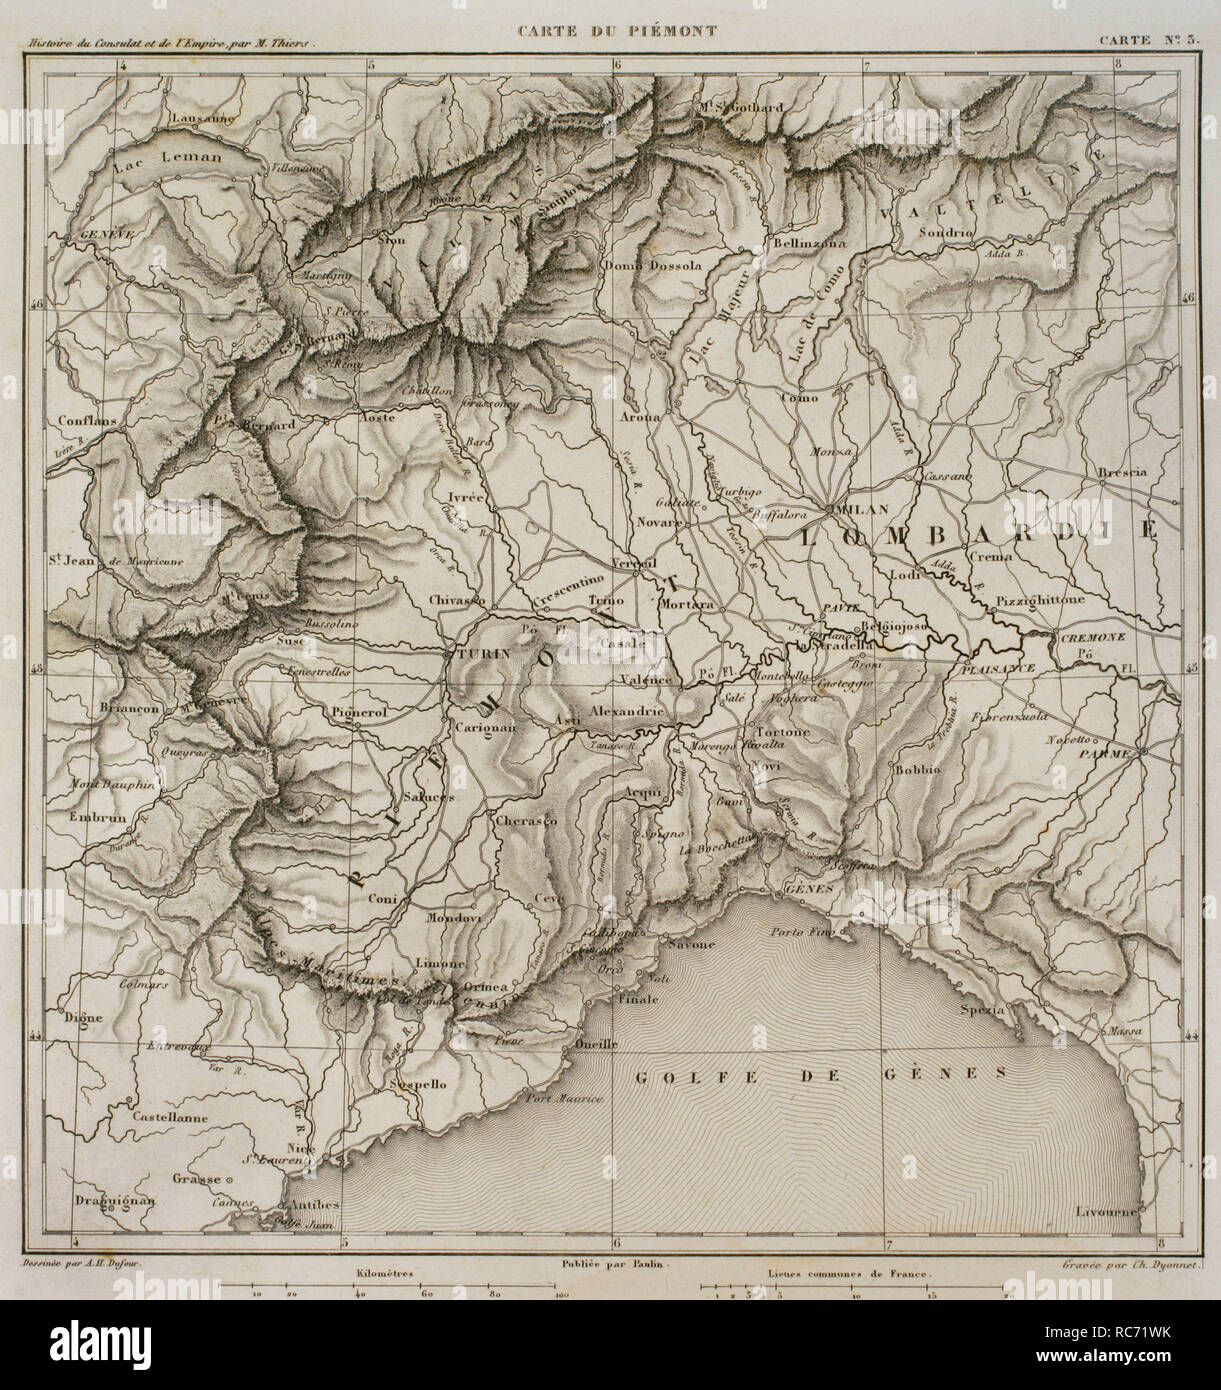 Italy Map 19th Century Stock Photos Italy Map 19th Century Stock